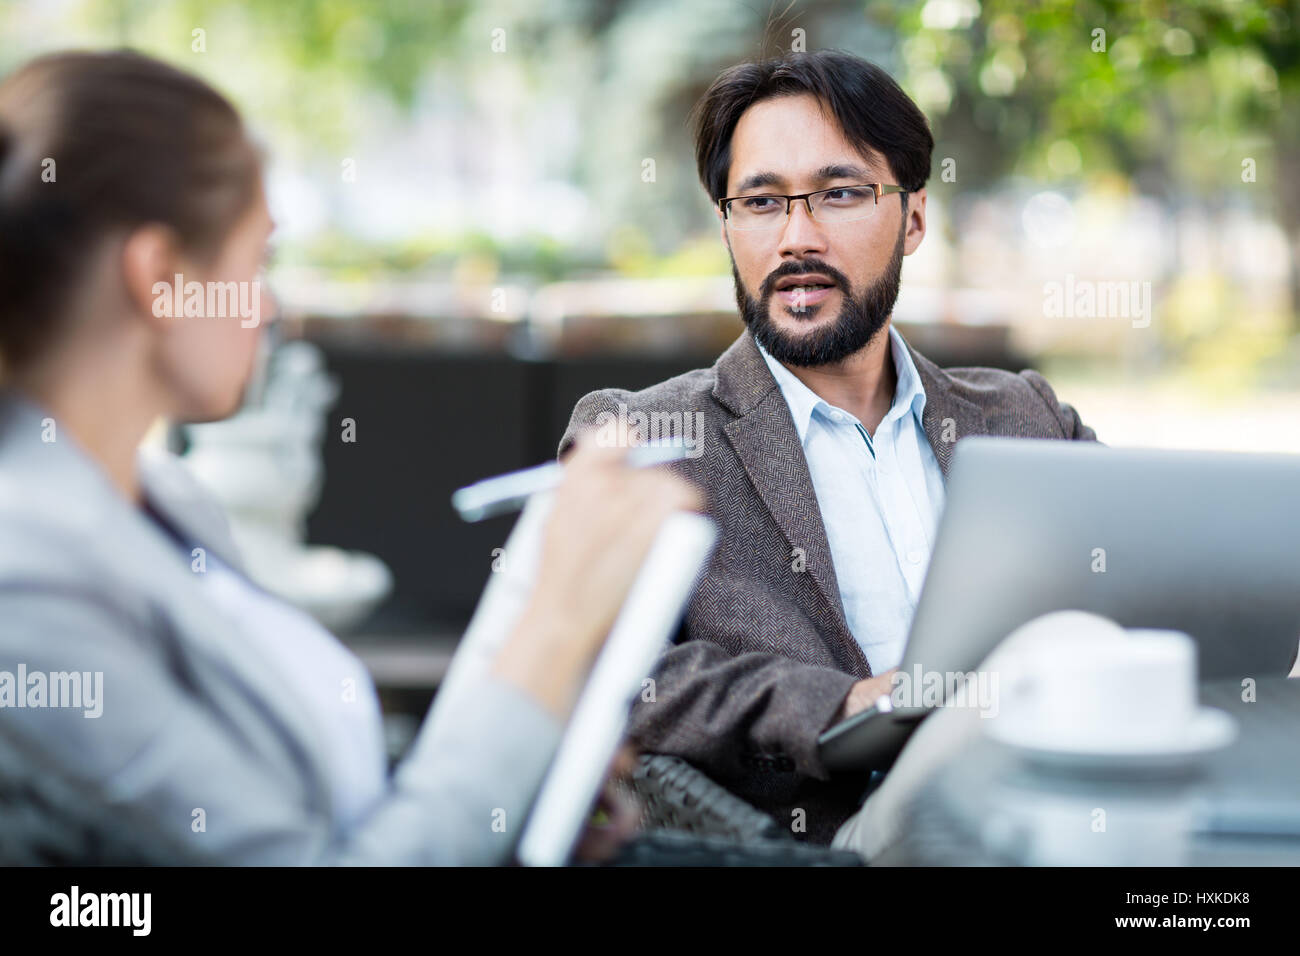 Conducting informal interview with applicant Stock Photo